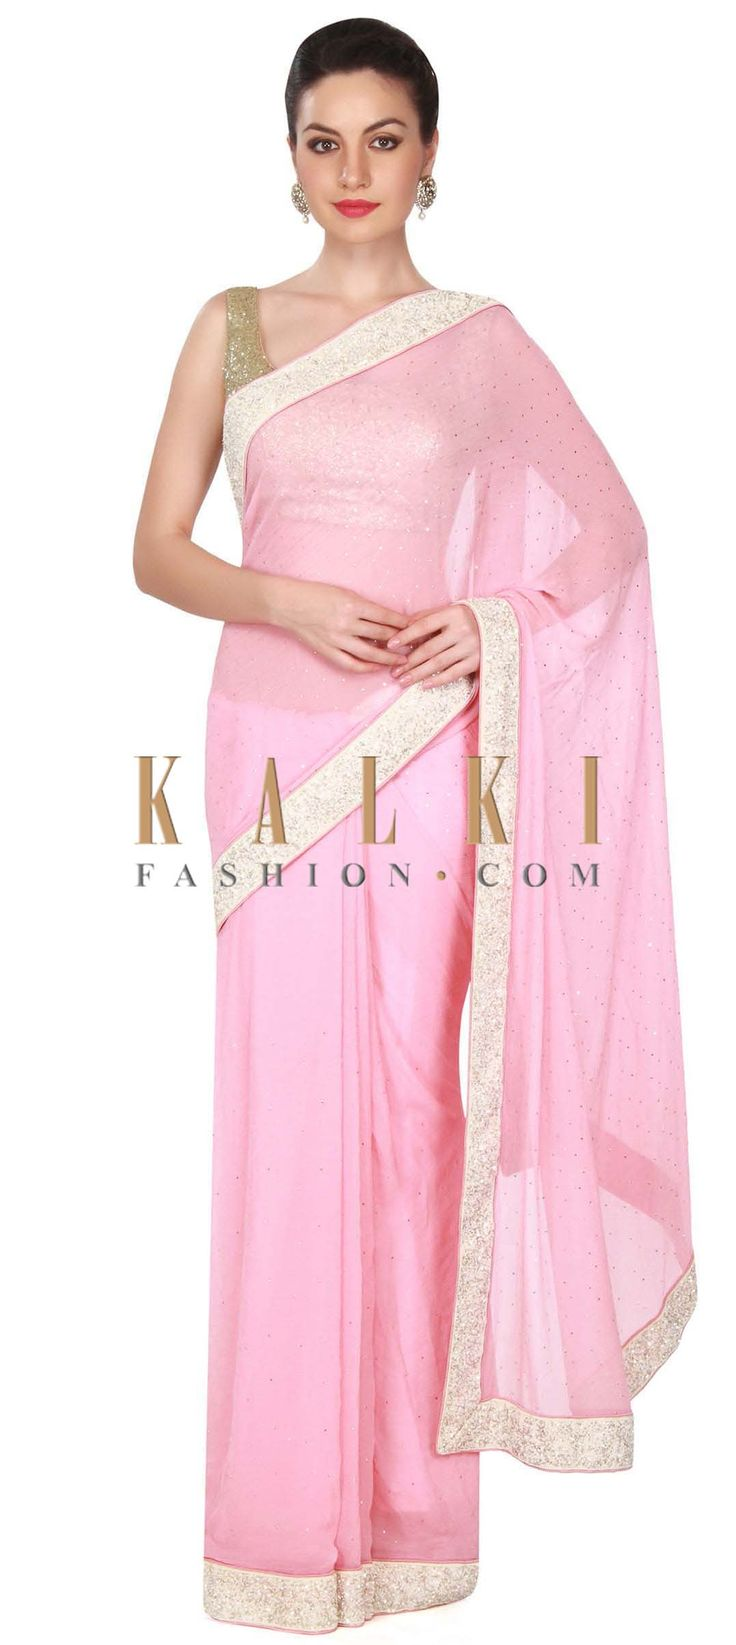 Buy this Pink chiffon saree with white border only on Kalki